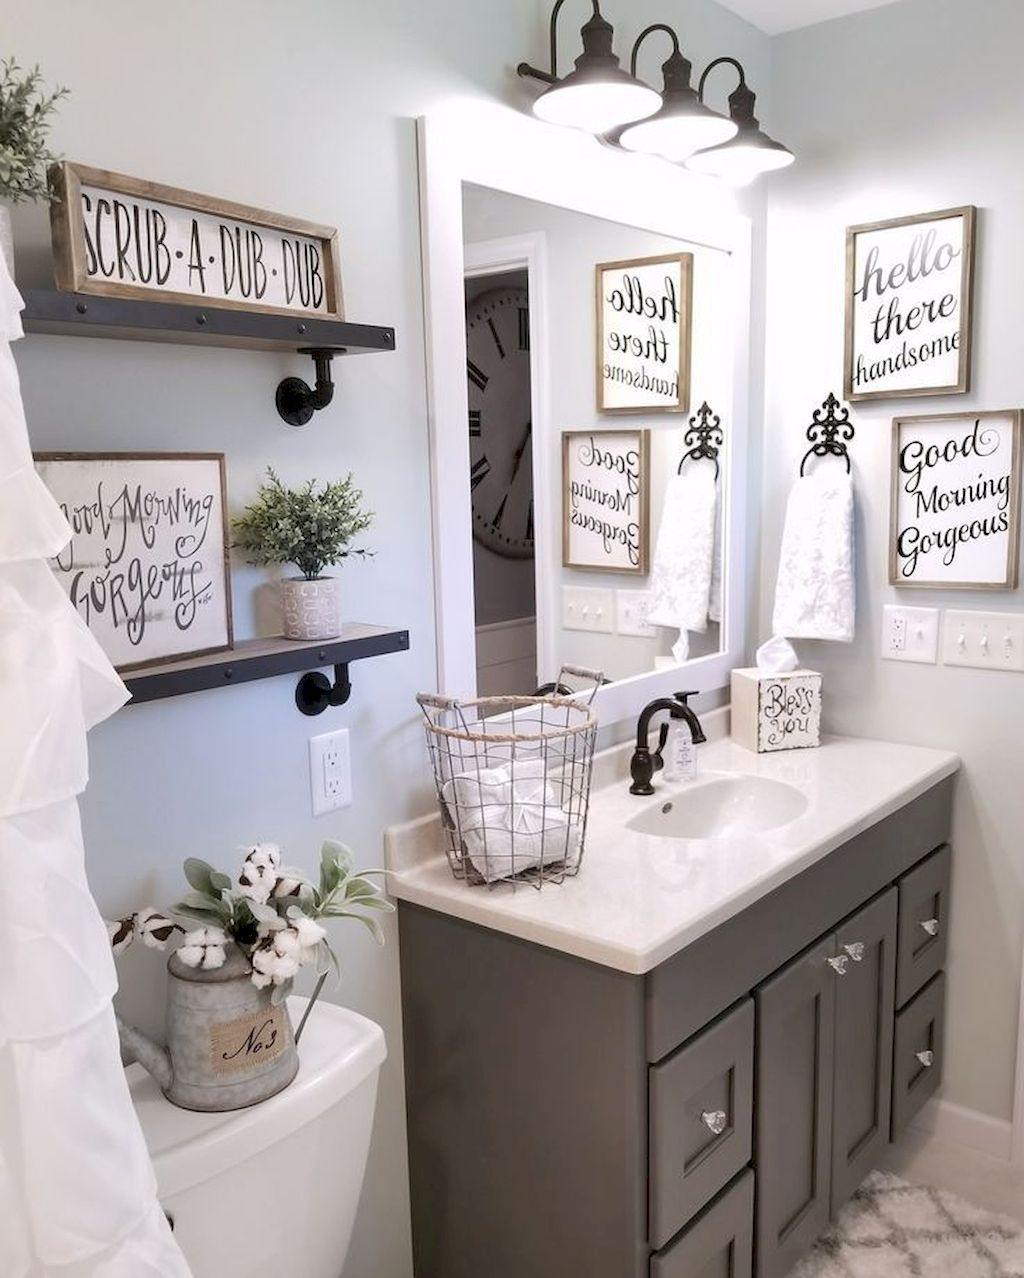 110 Spectacular Farmhouse Bathroom Decor Ideas | Renovation ...